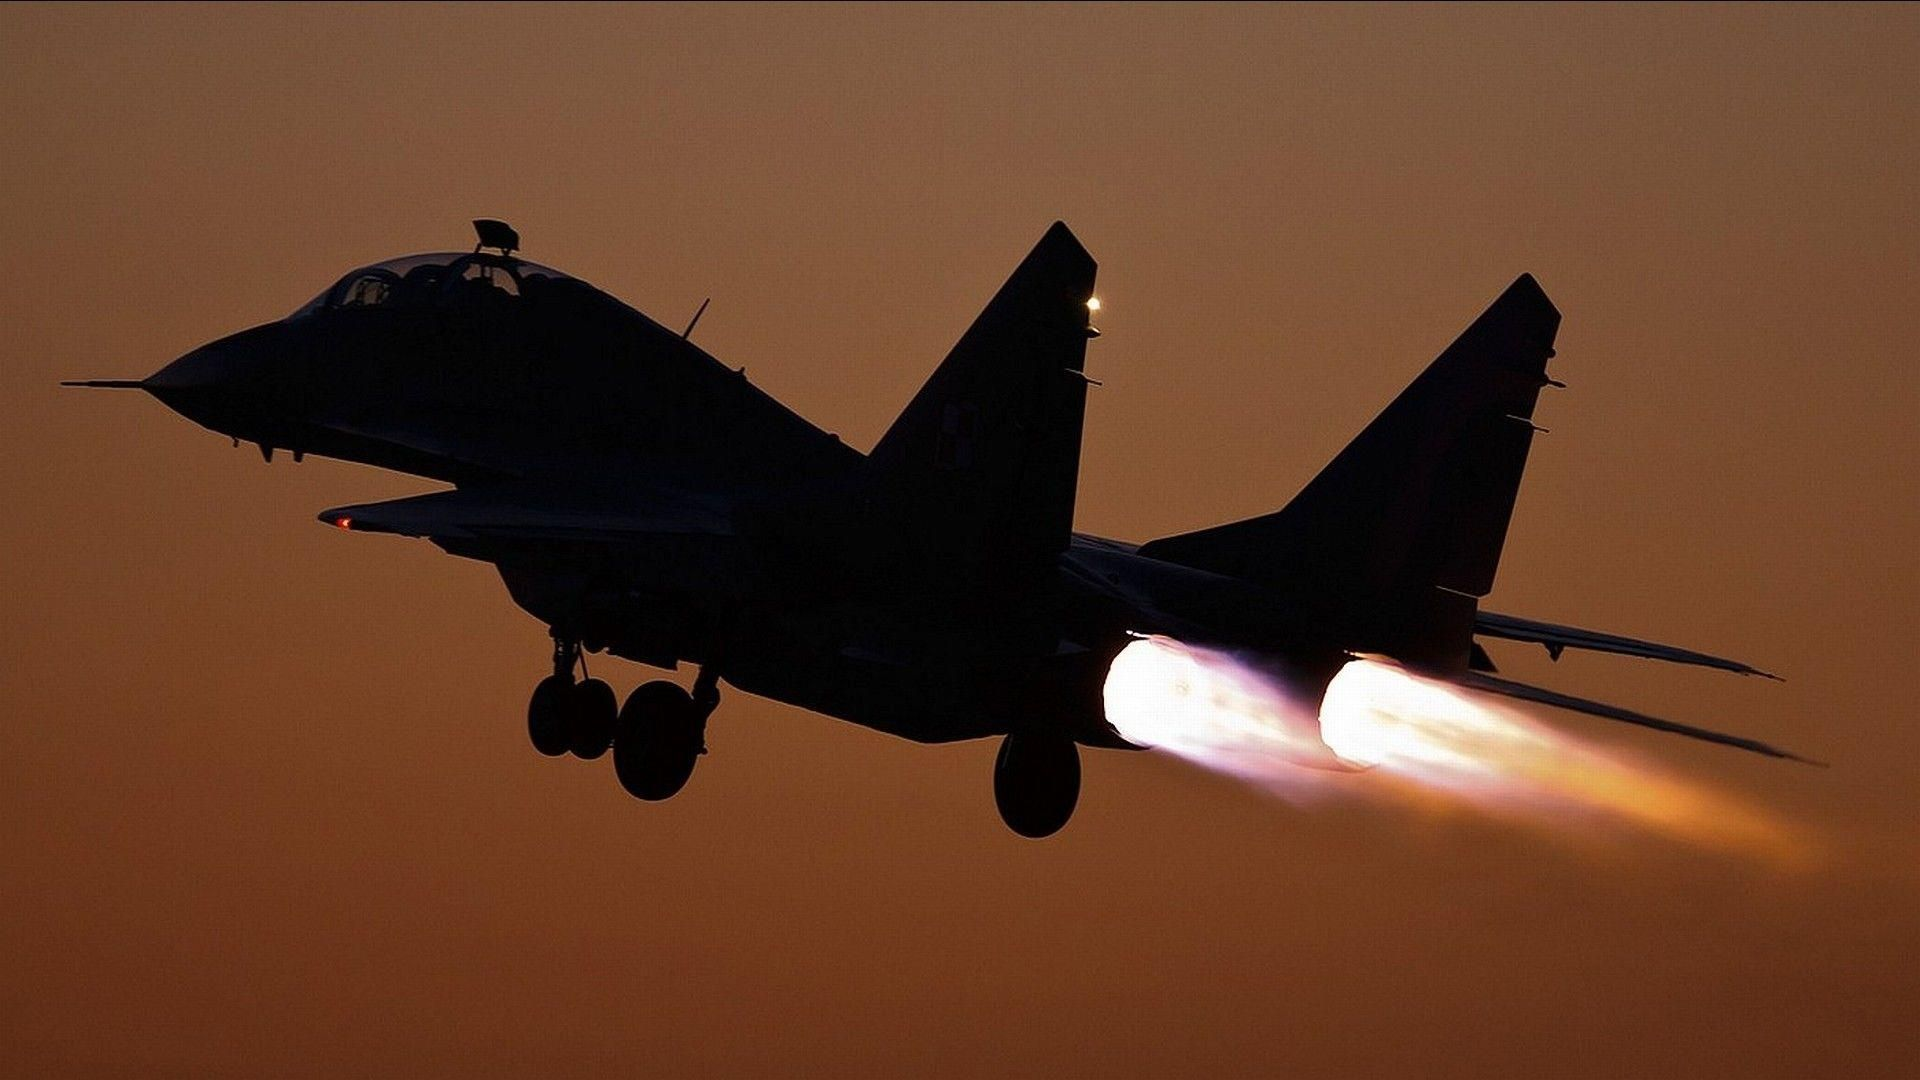 Soviet Jet Fighter Takeoff In Afterburner